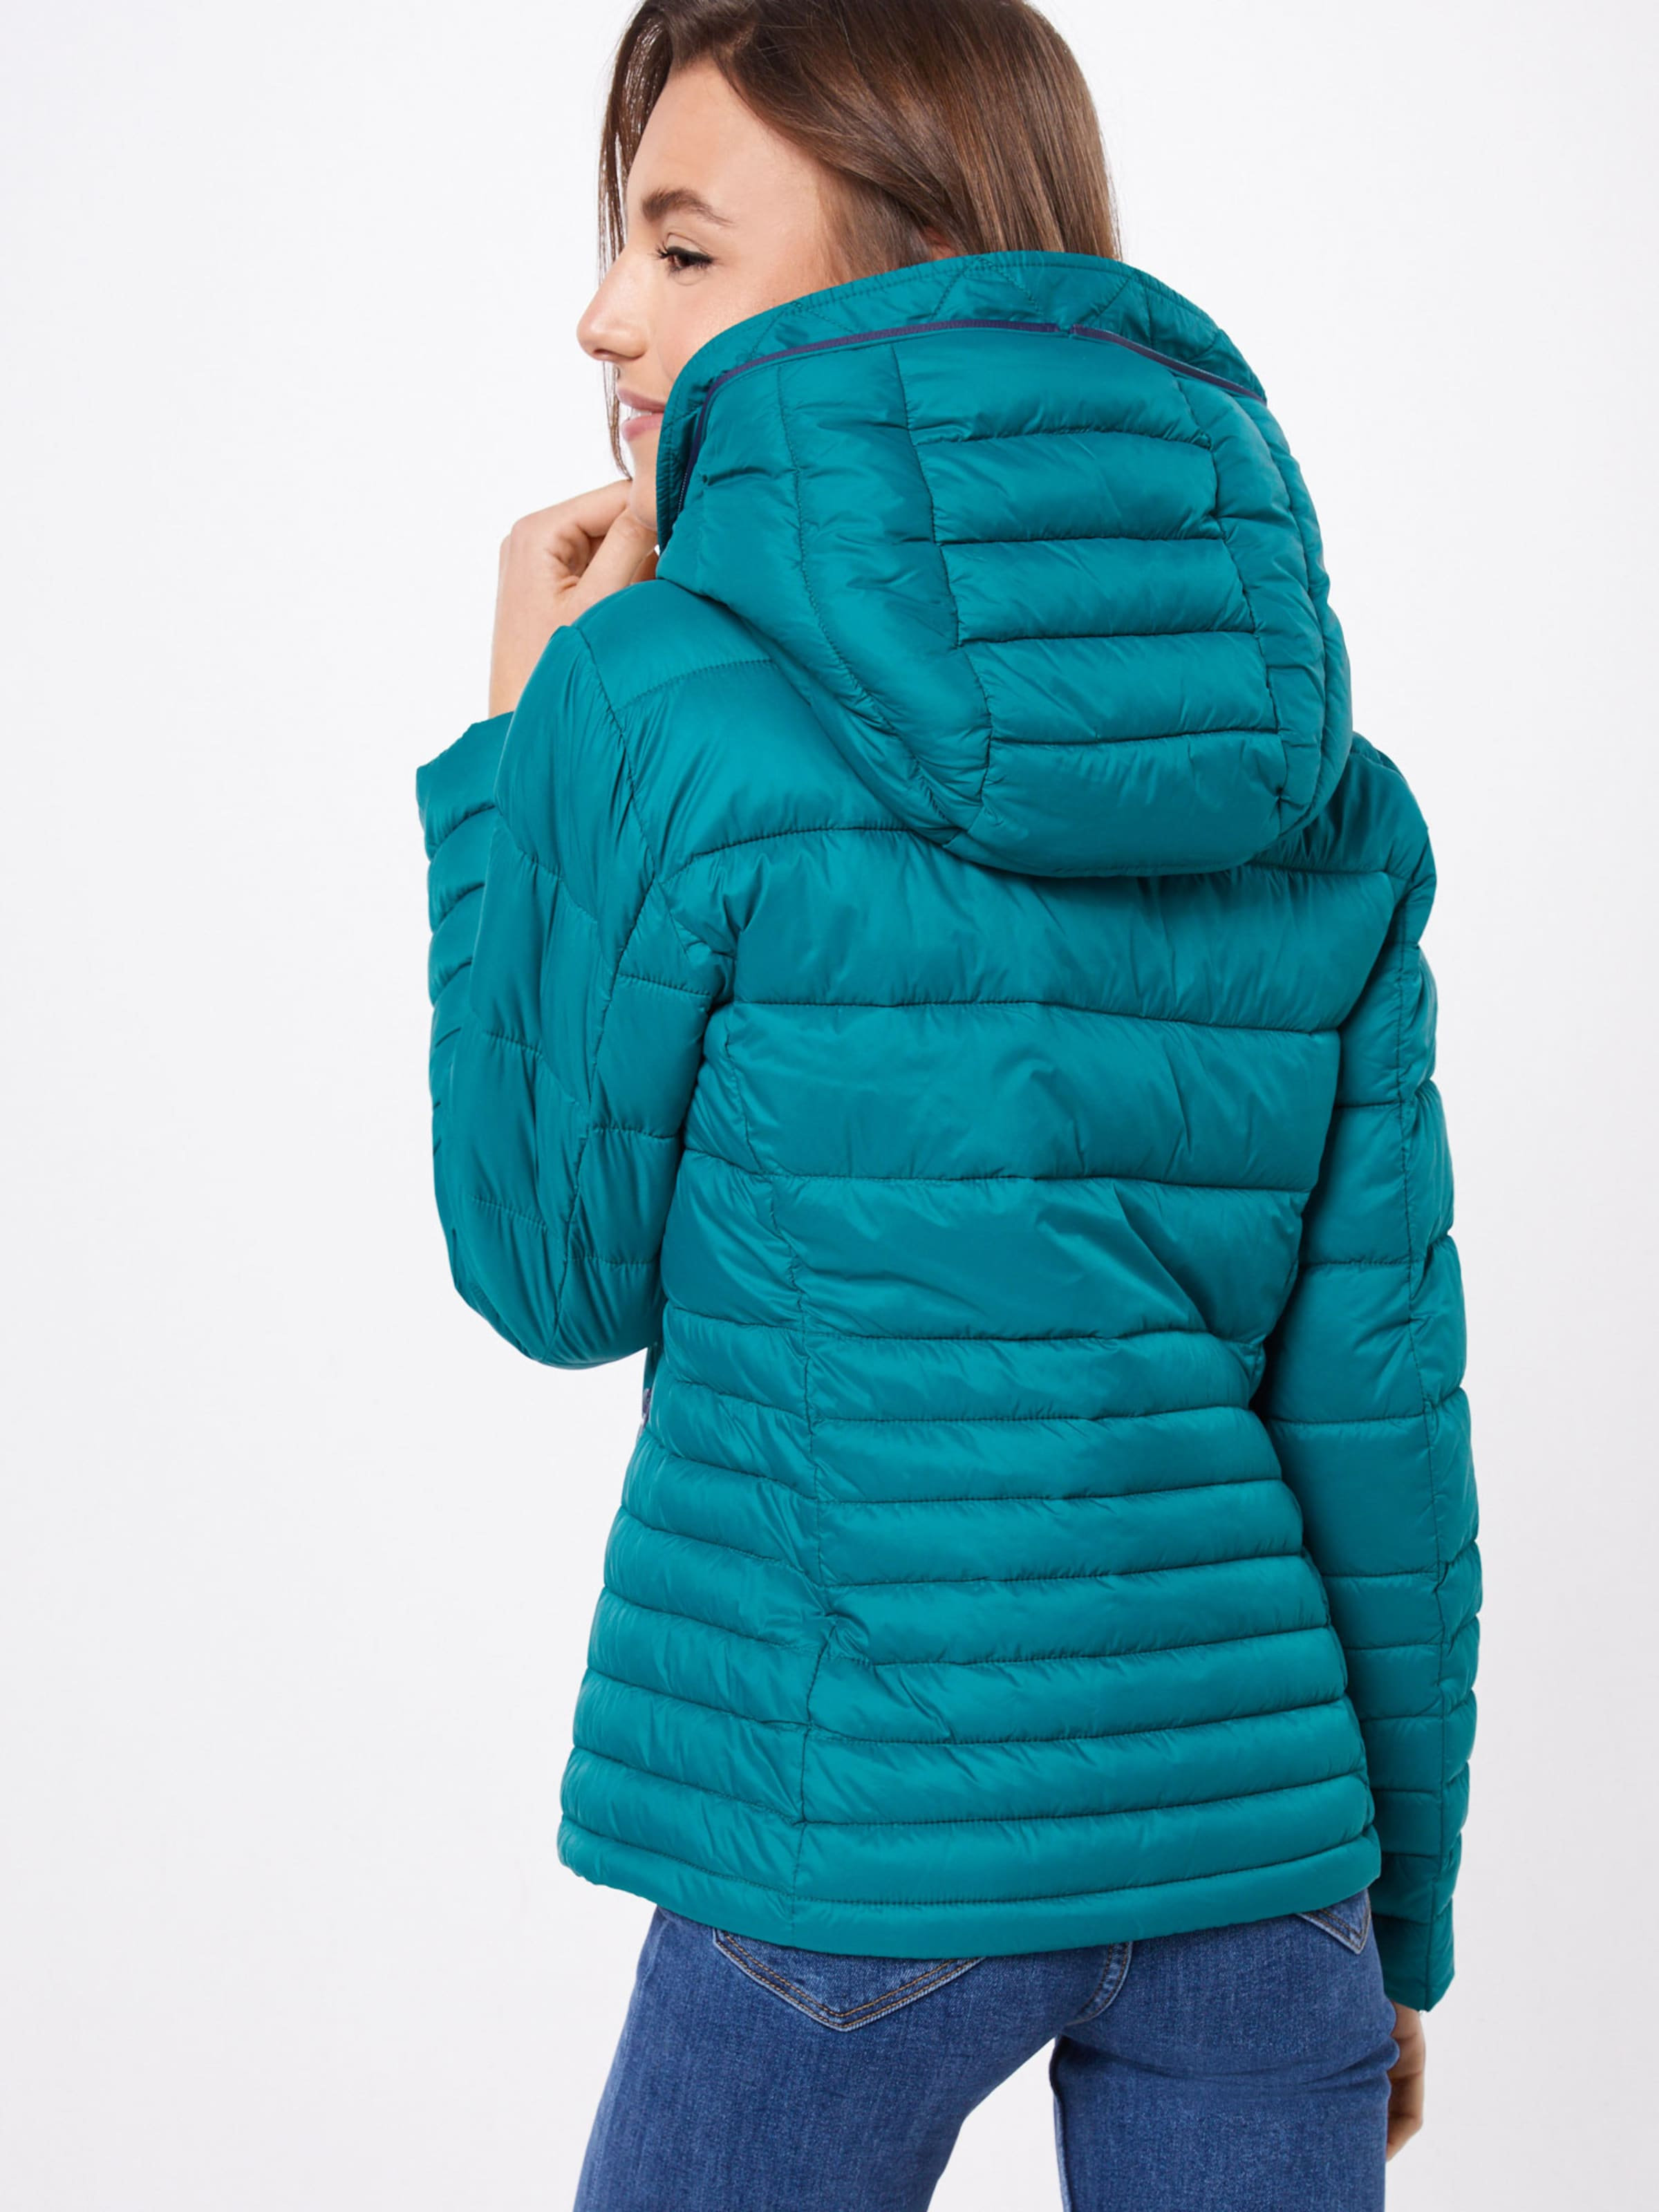 Esprit Jacke In Smaragd '3m Edc By Thinsulate' SpqUzMVG